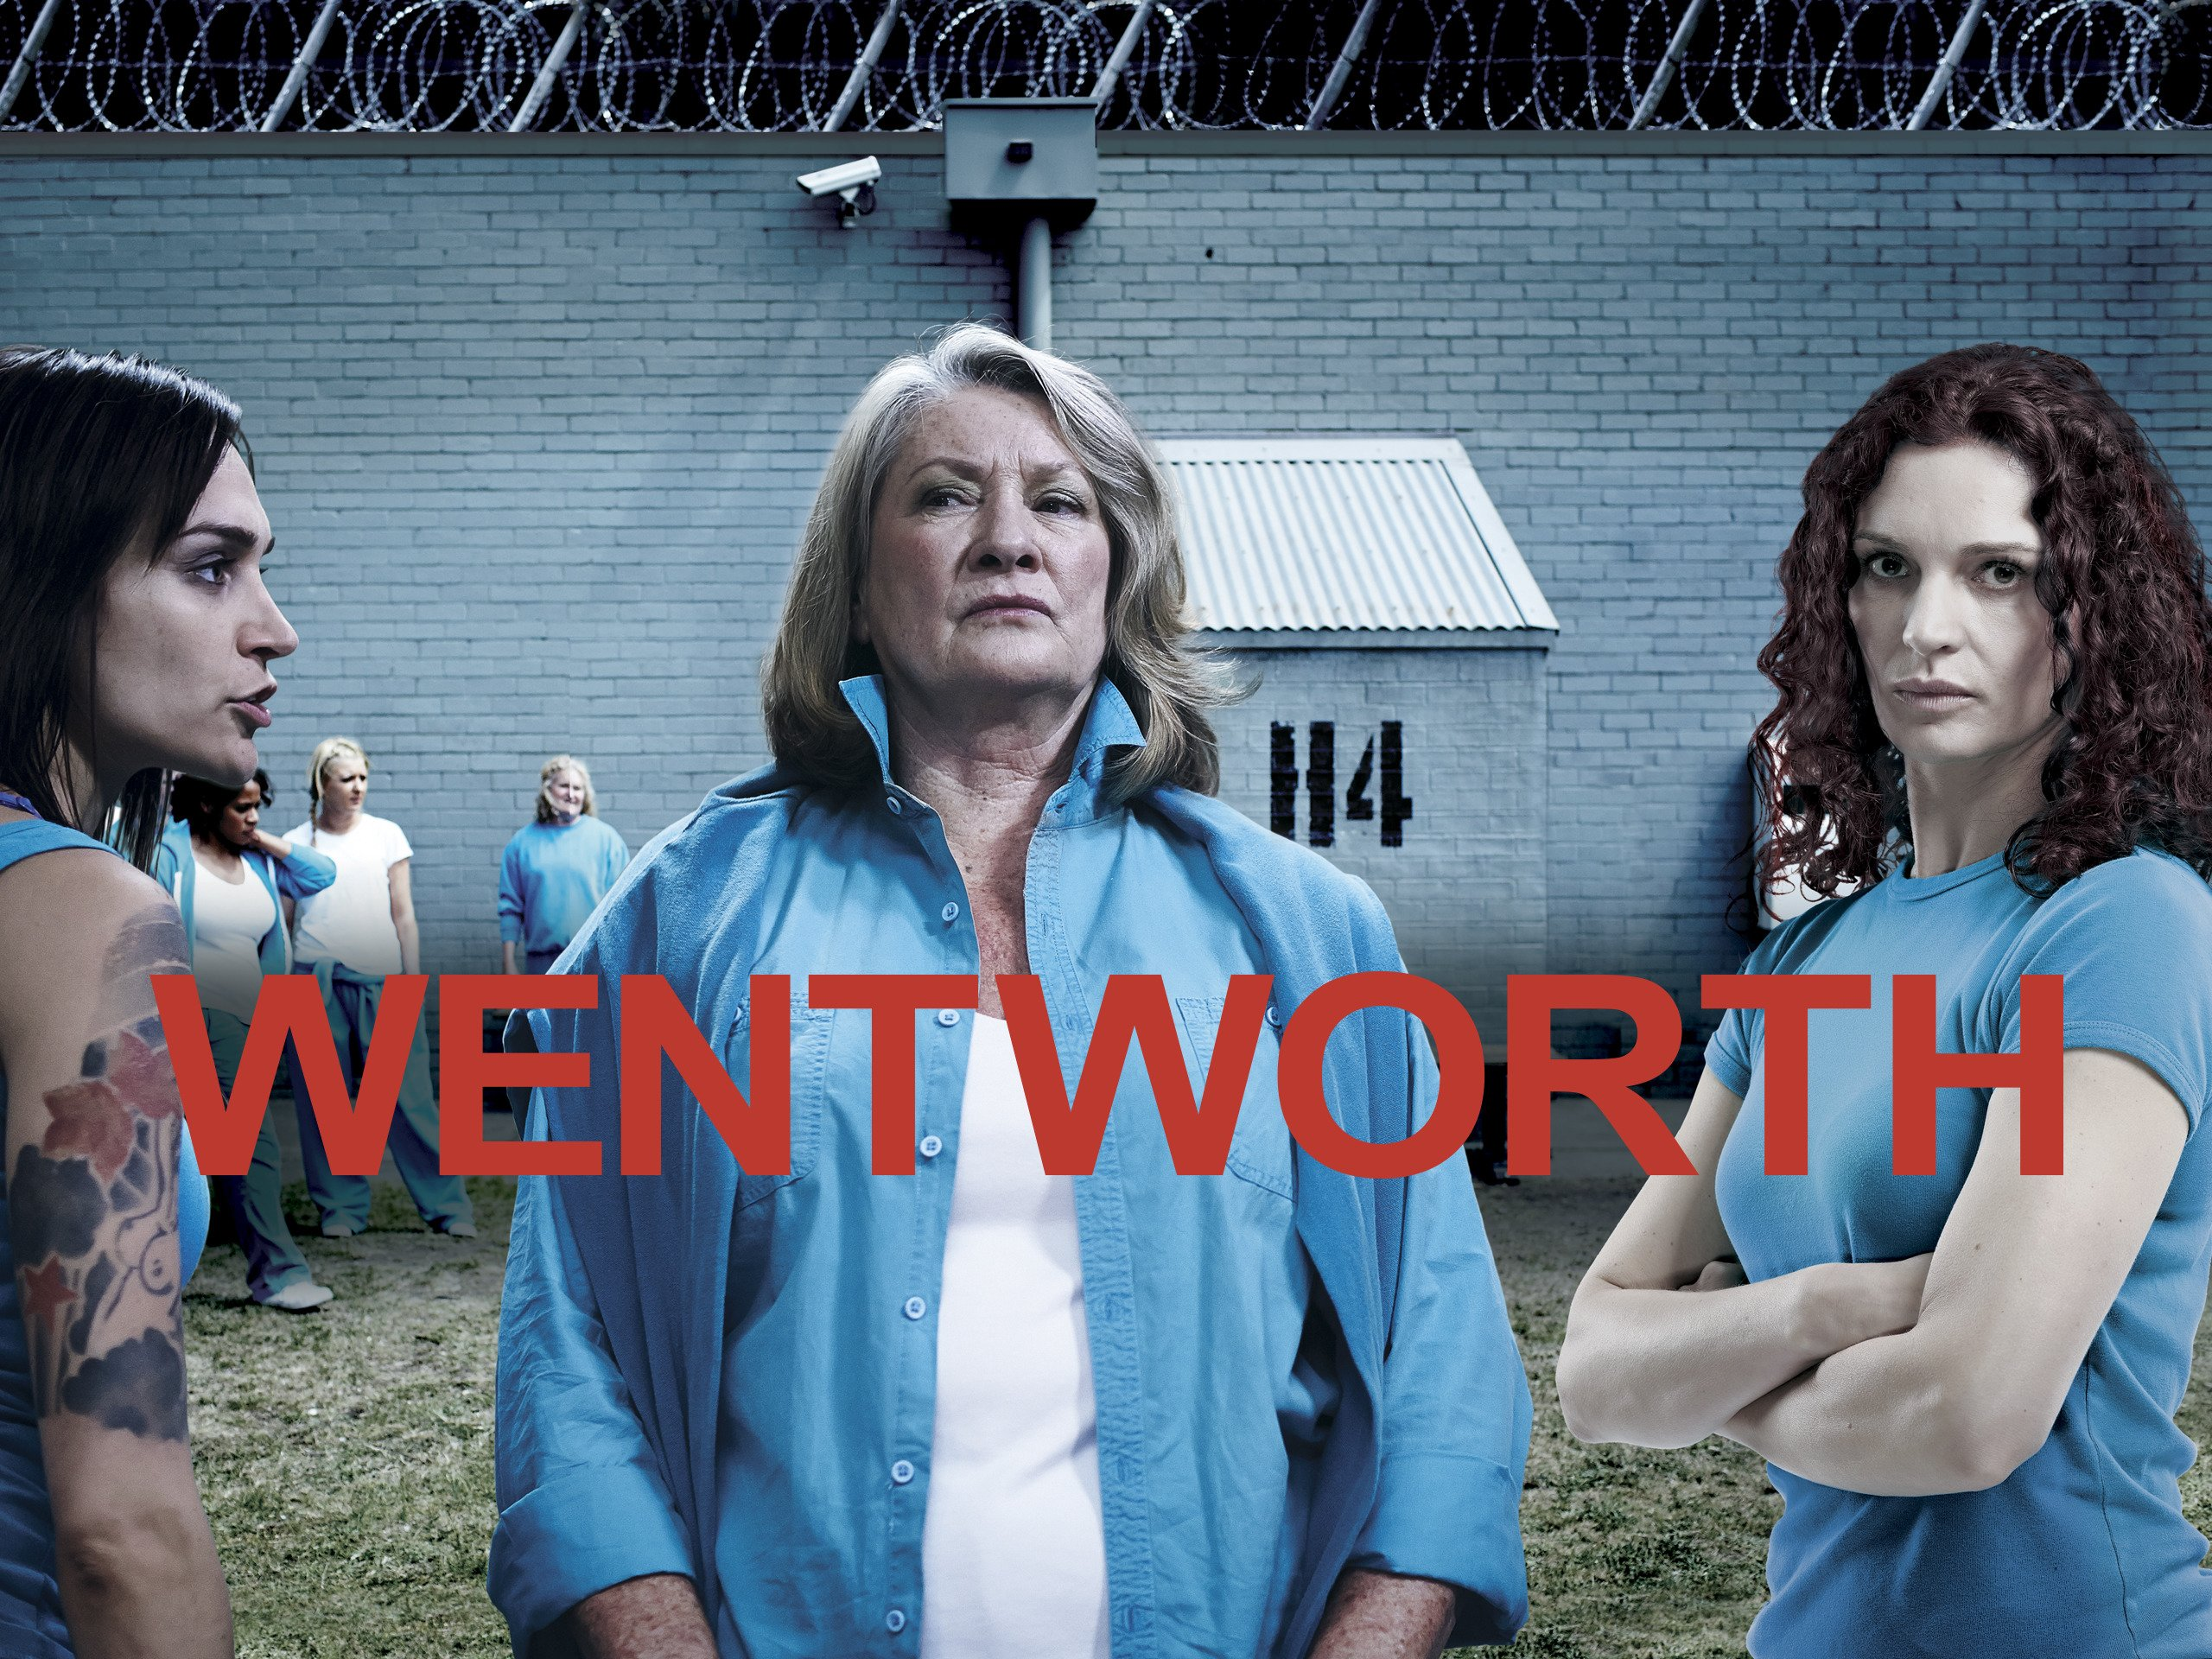 Wentworth Season 1 - Season 1